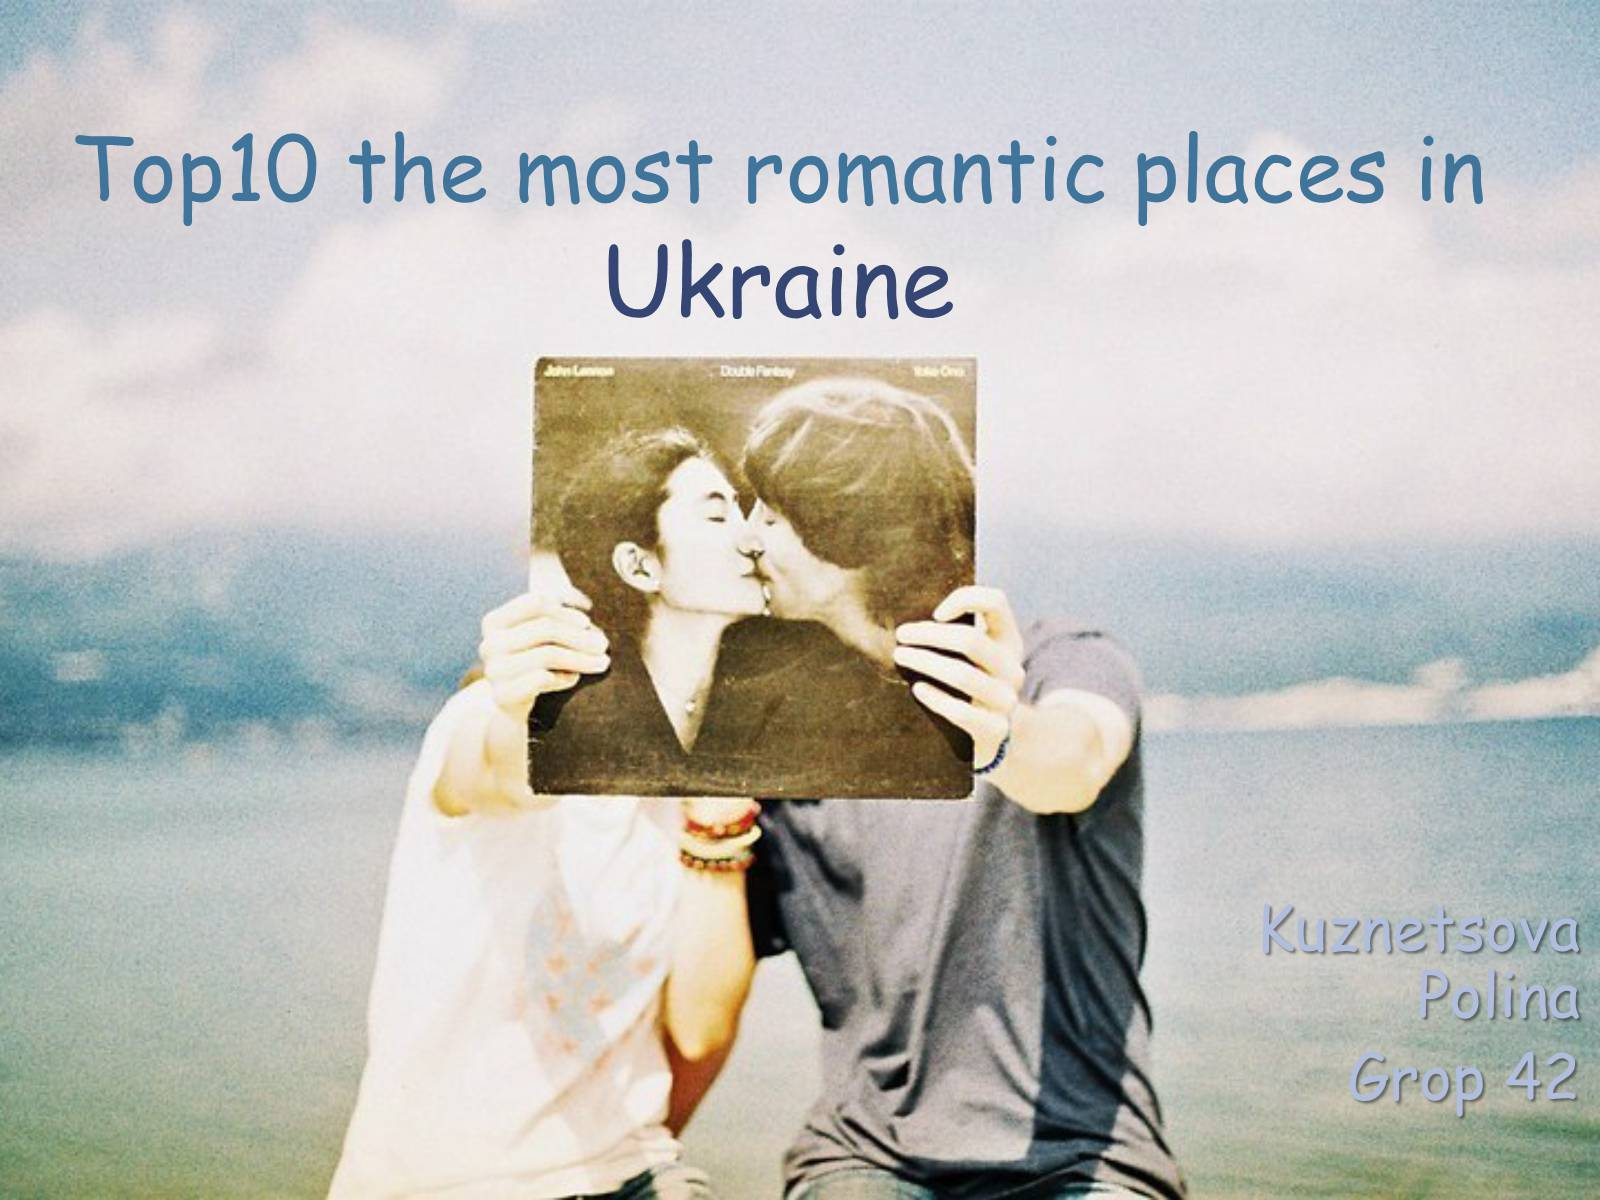 Презентація на тему «Top10 the most romantic places in Ukraine»